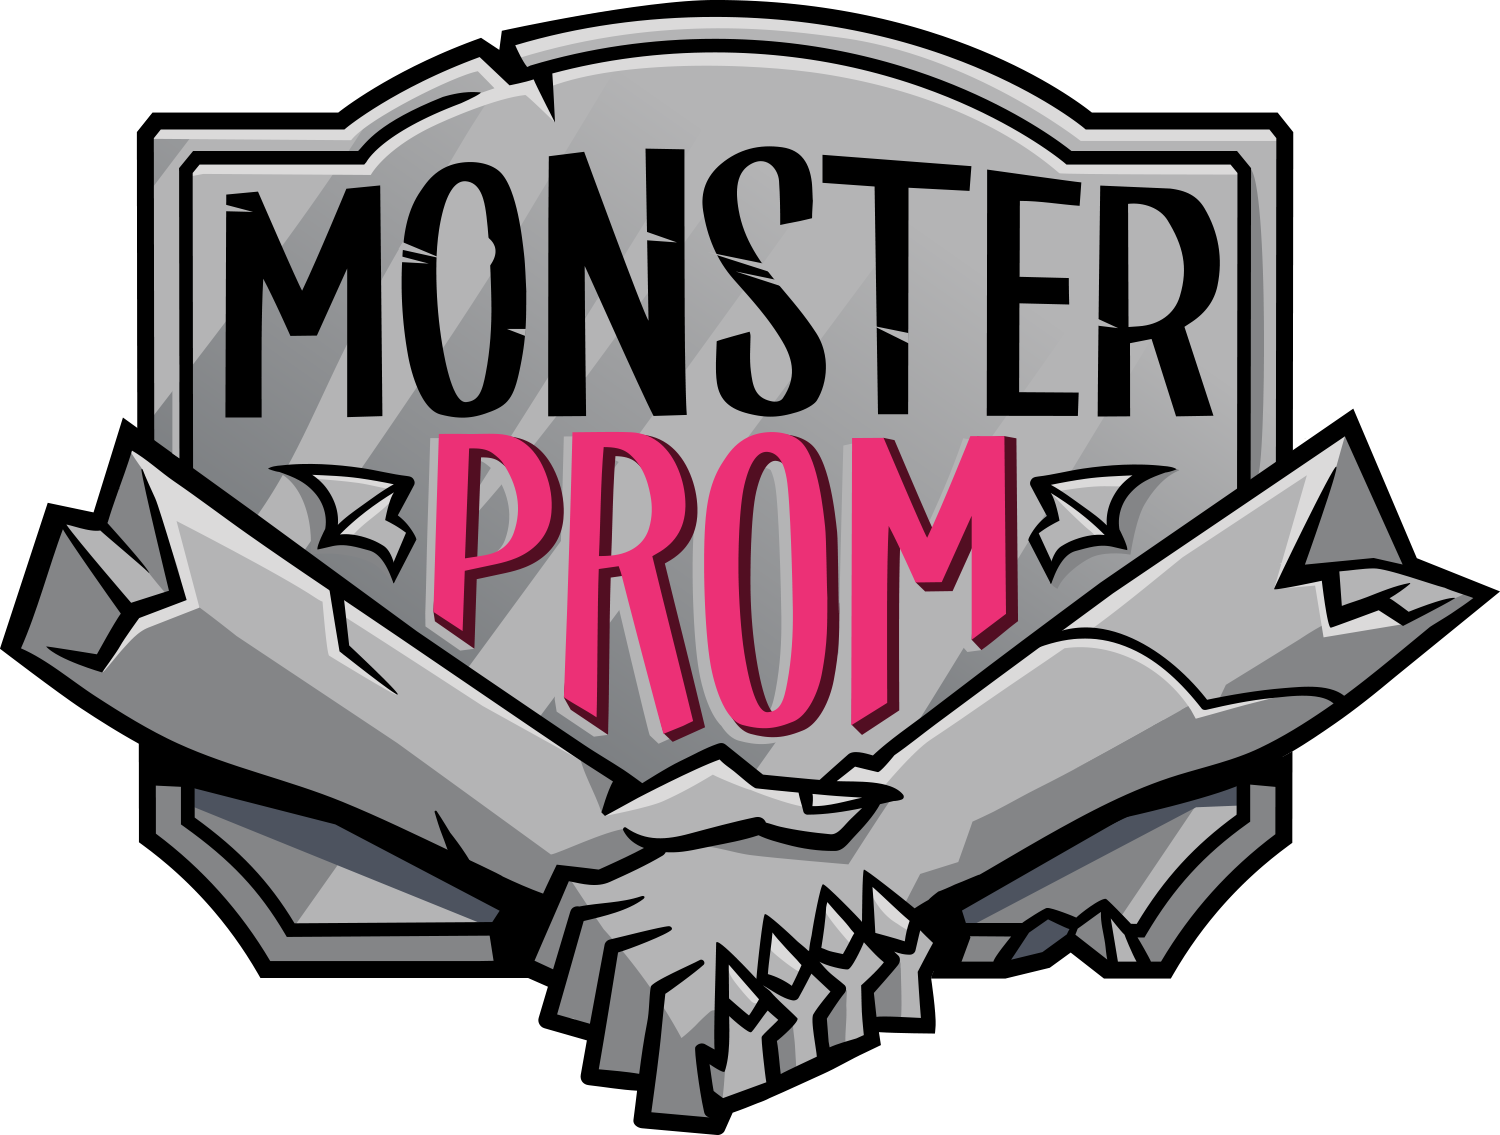 High school prom clipart vector black and white Monster Prom vector black and white